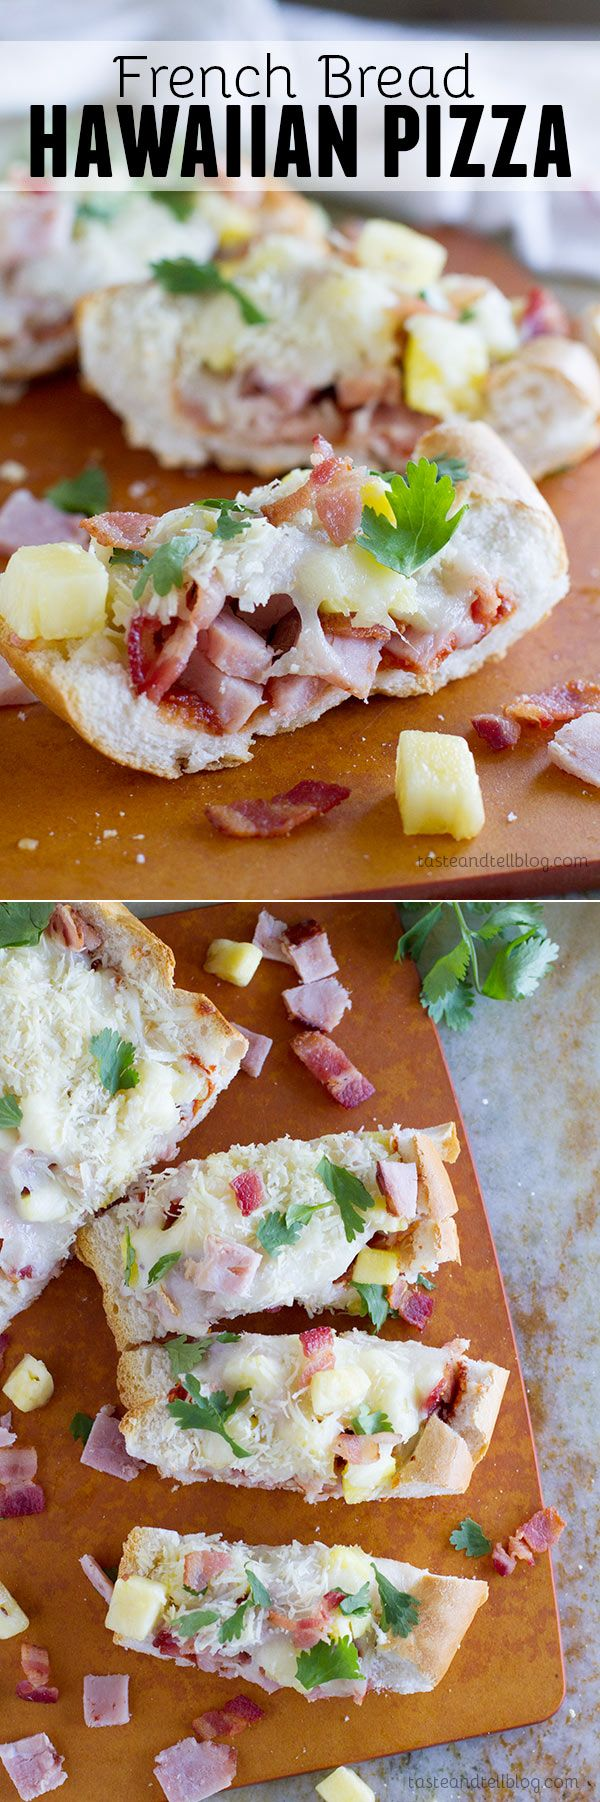 A great use of leftover ham, this French Bread Hawaiian Pizza has ham, bacon, pineapple and lots of cheese, all baked on top of a loaf of French Bread.